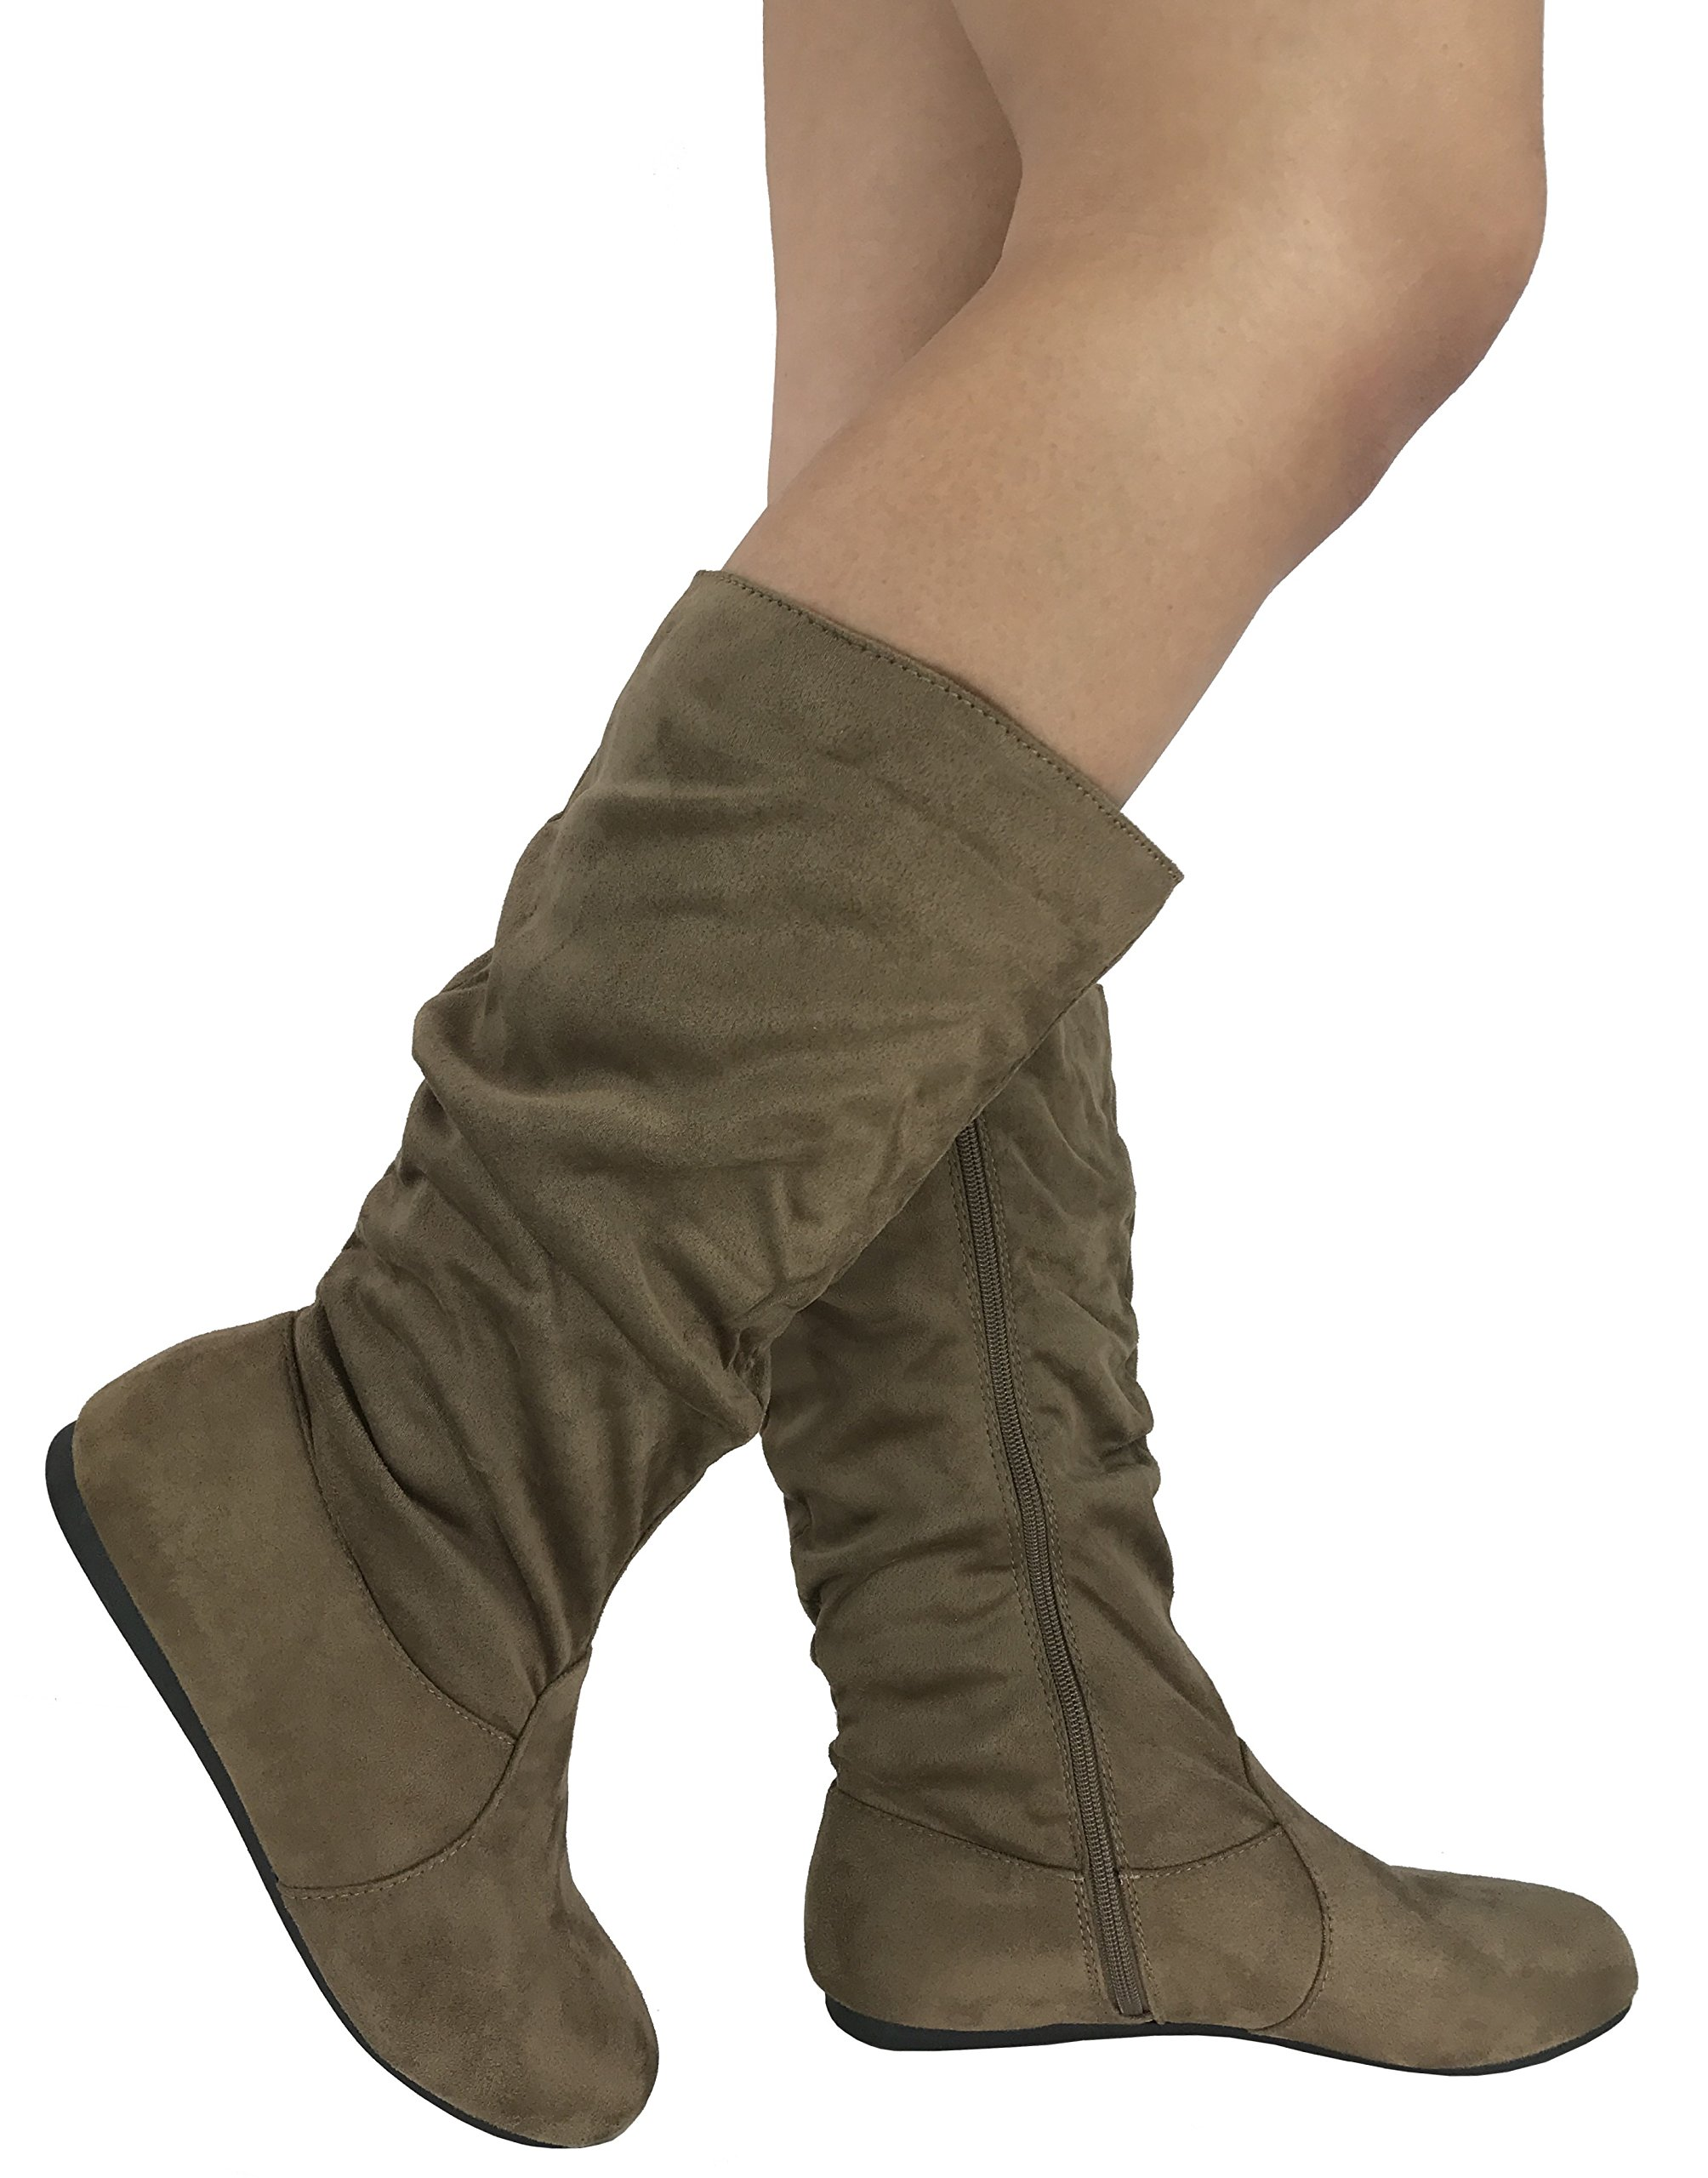 Wells Collection Womens Wonda Boots Soft Slouchy Flat to Low Heel Under Knee High, Taupe, 8.5